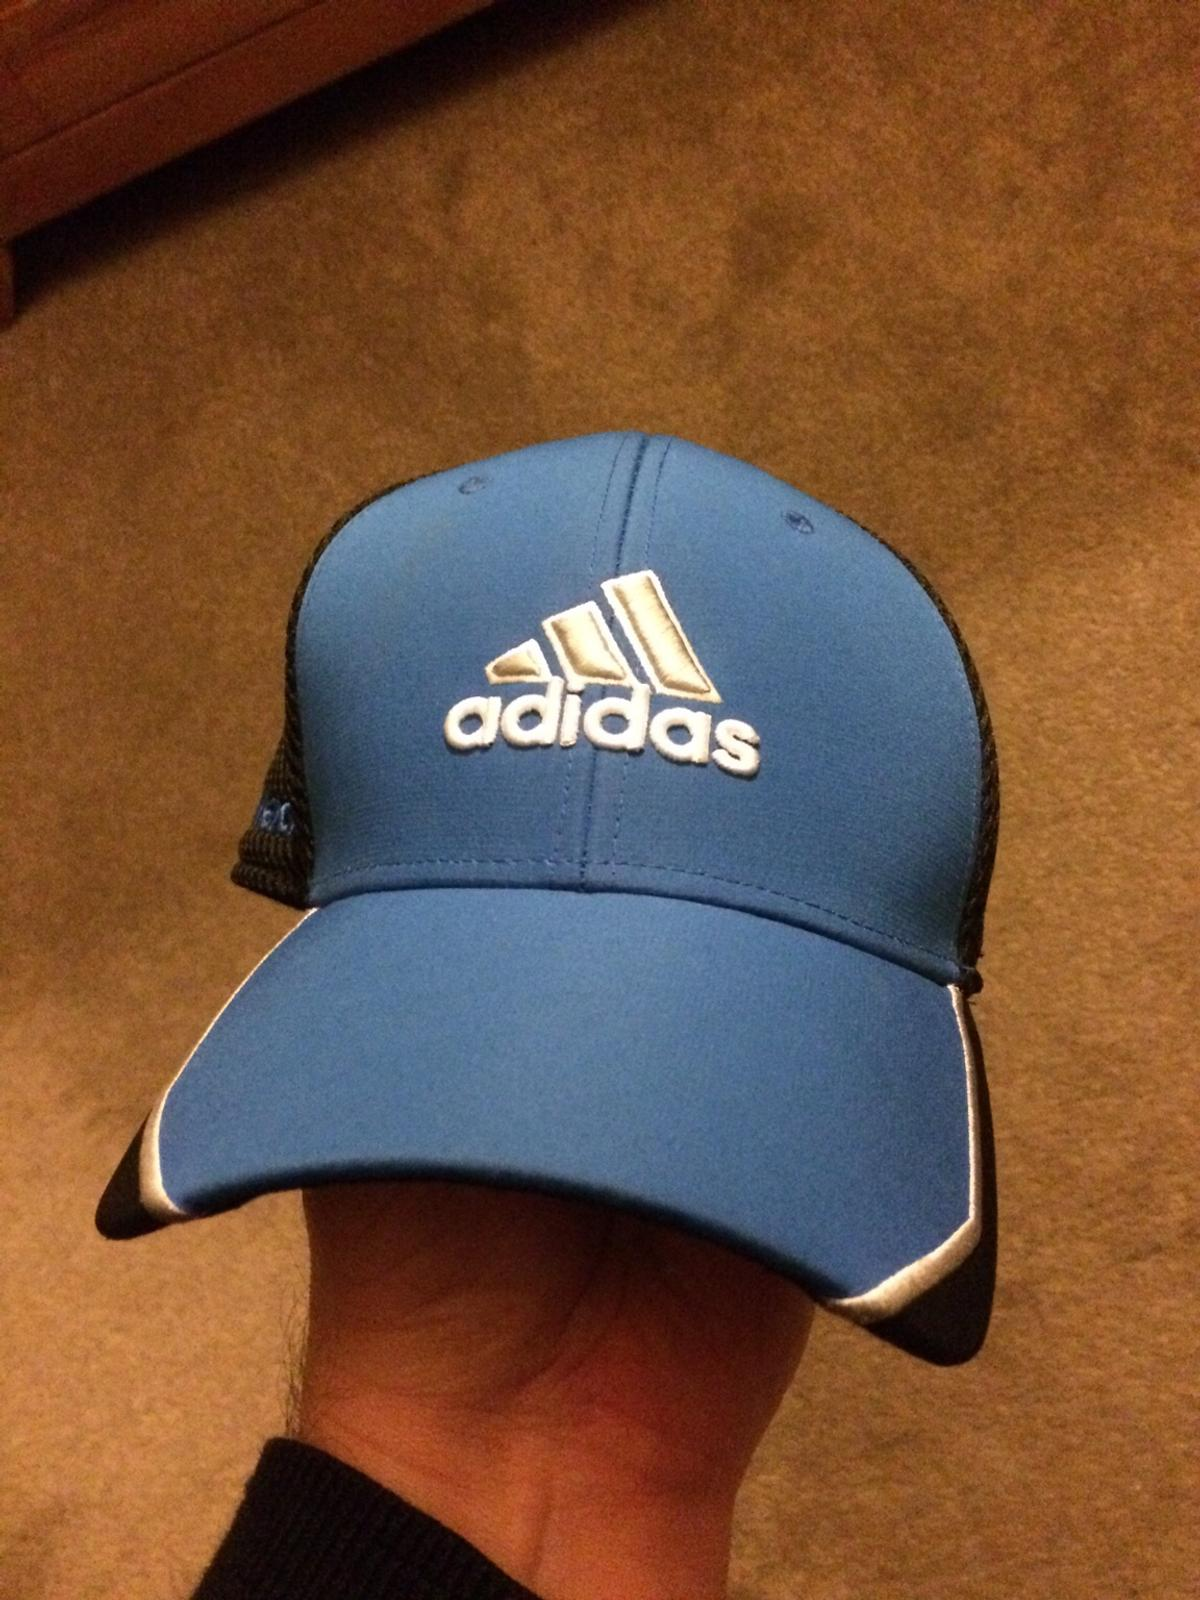 f838255b5b0ff Adidas   Taylor Made Golf cap in B37 Solihull for £10.00 for sale ...